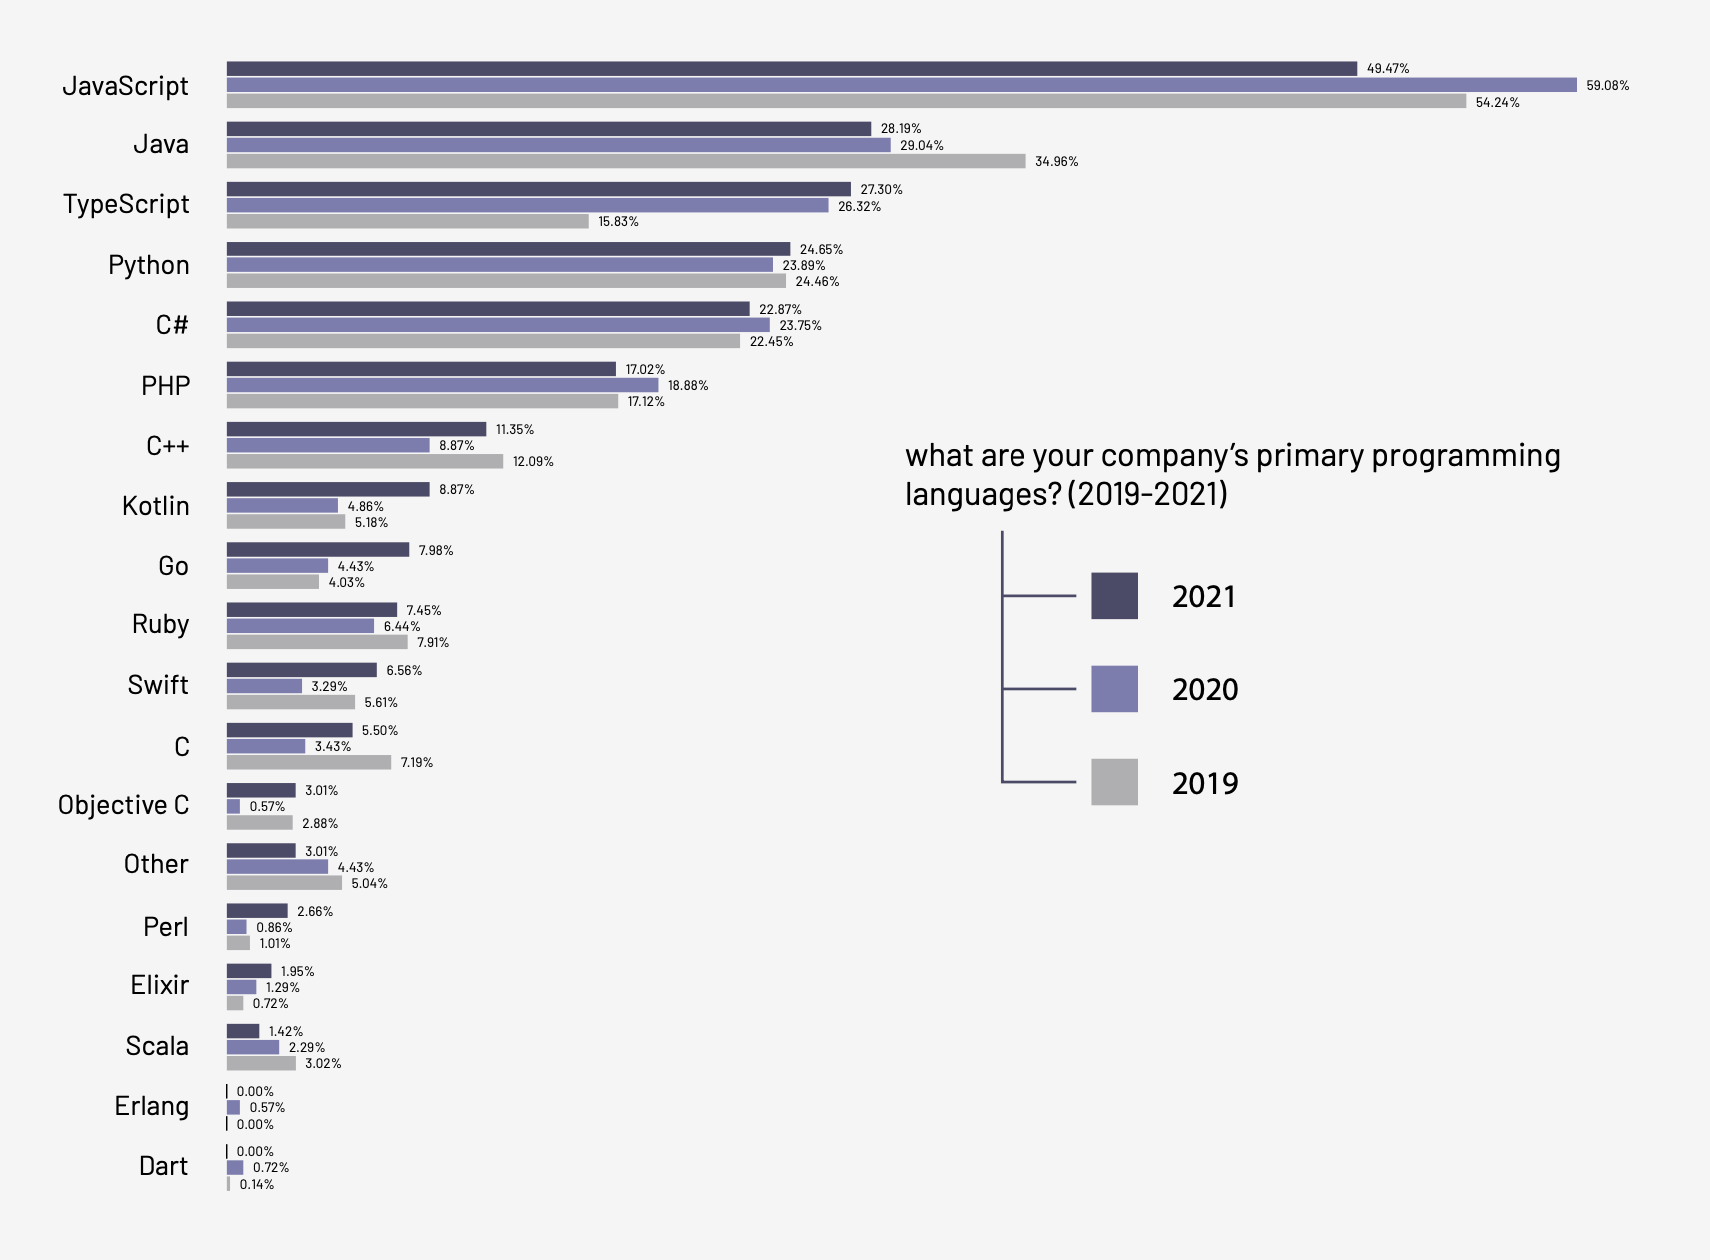 The most used programming languages